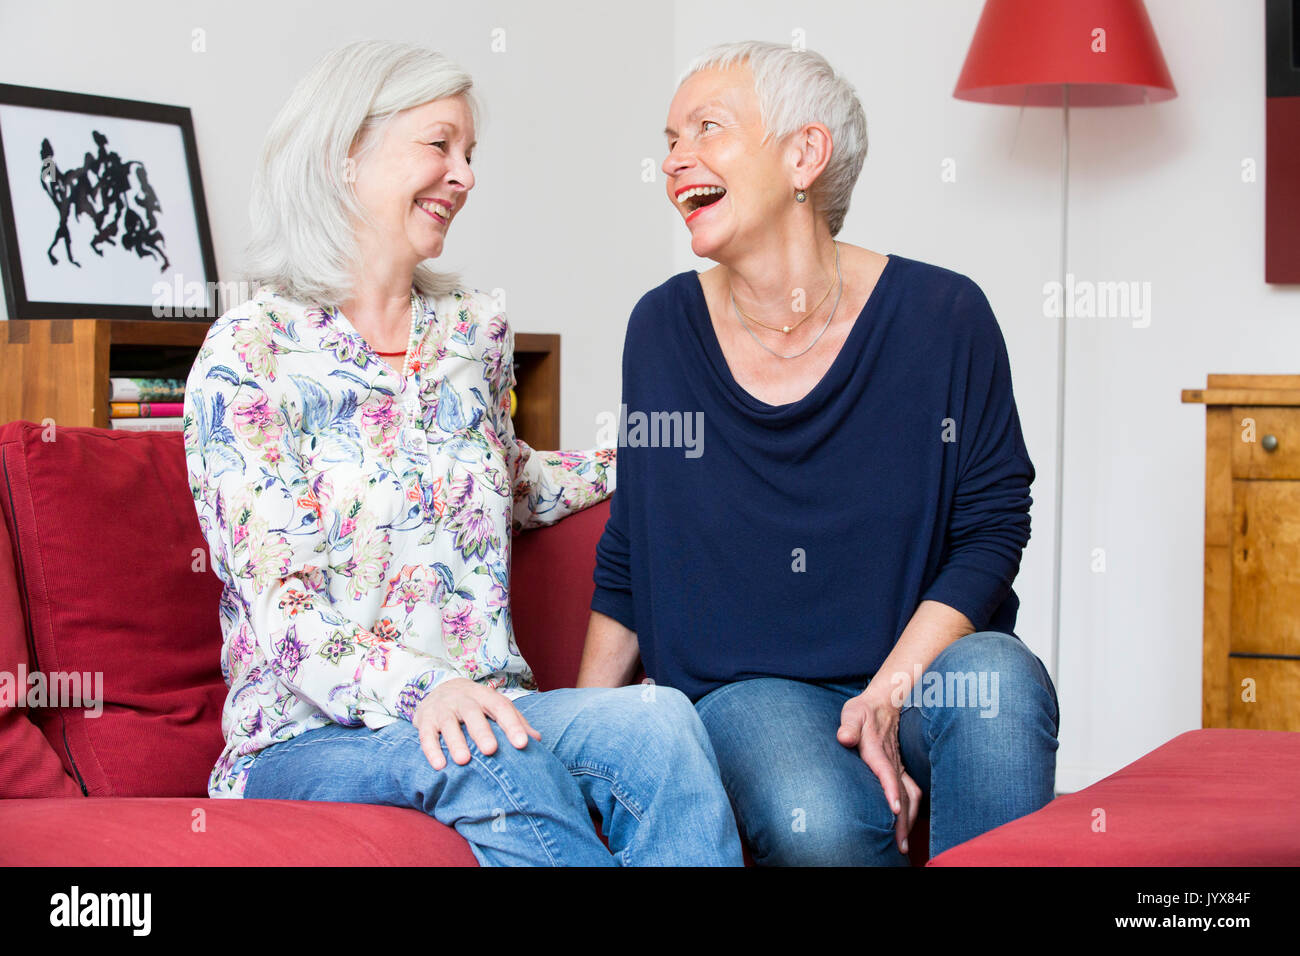 Older friends laughing together - Stock Image